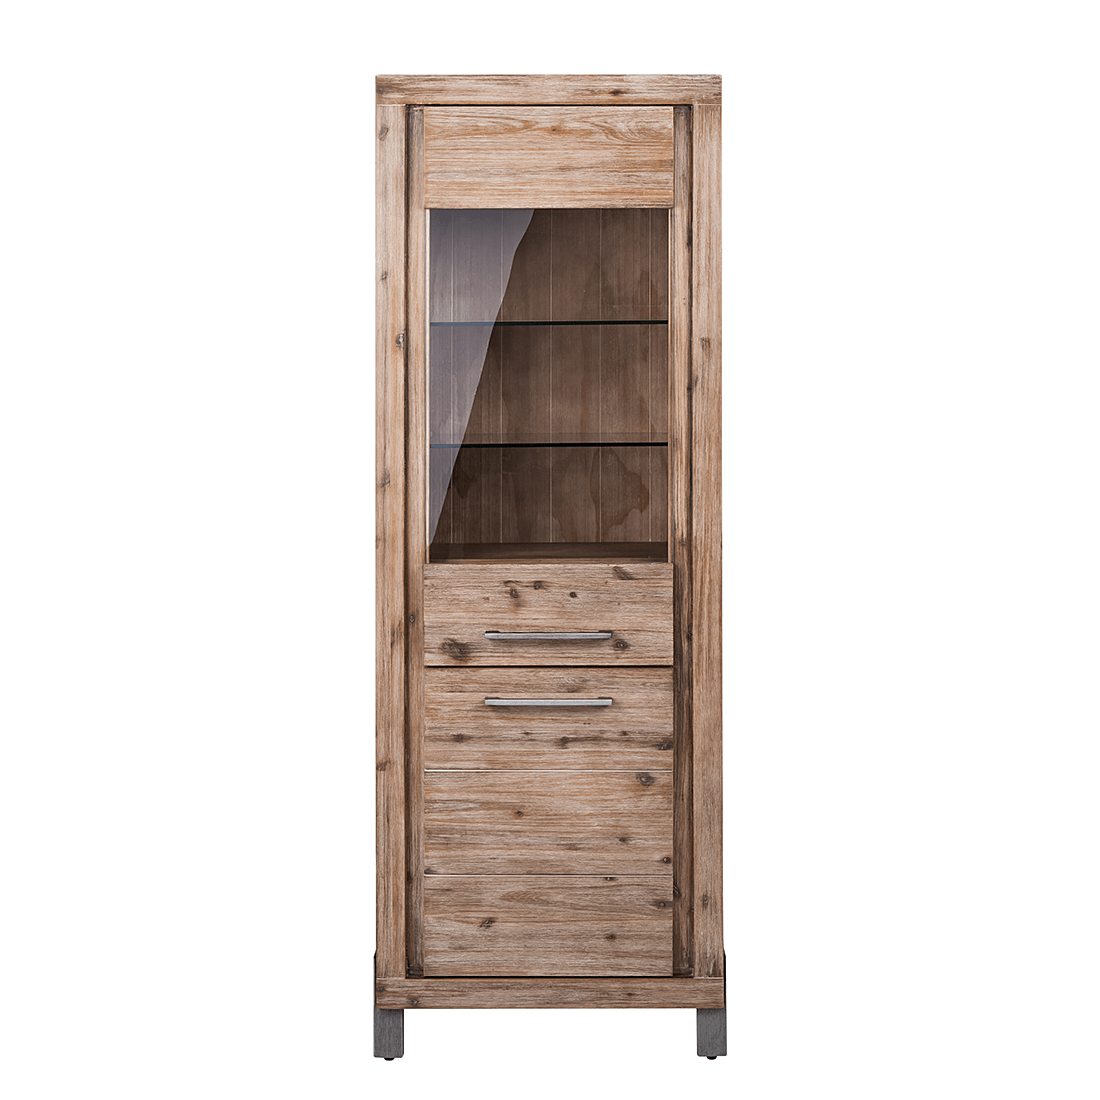 Küchen Highboard Vitrine Schrank Massivholz Akazie Grau Kommode Highboard